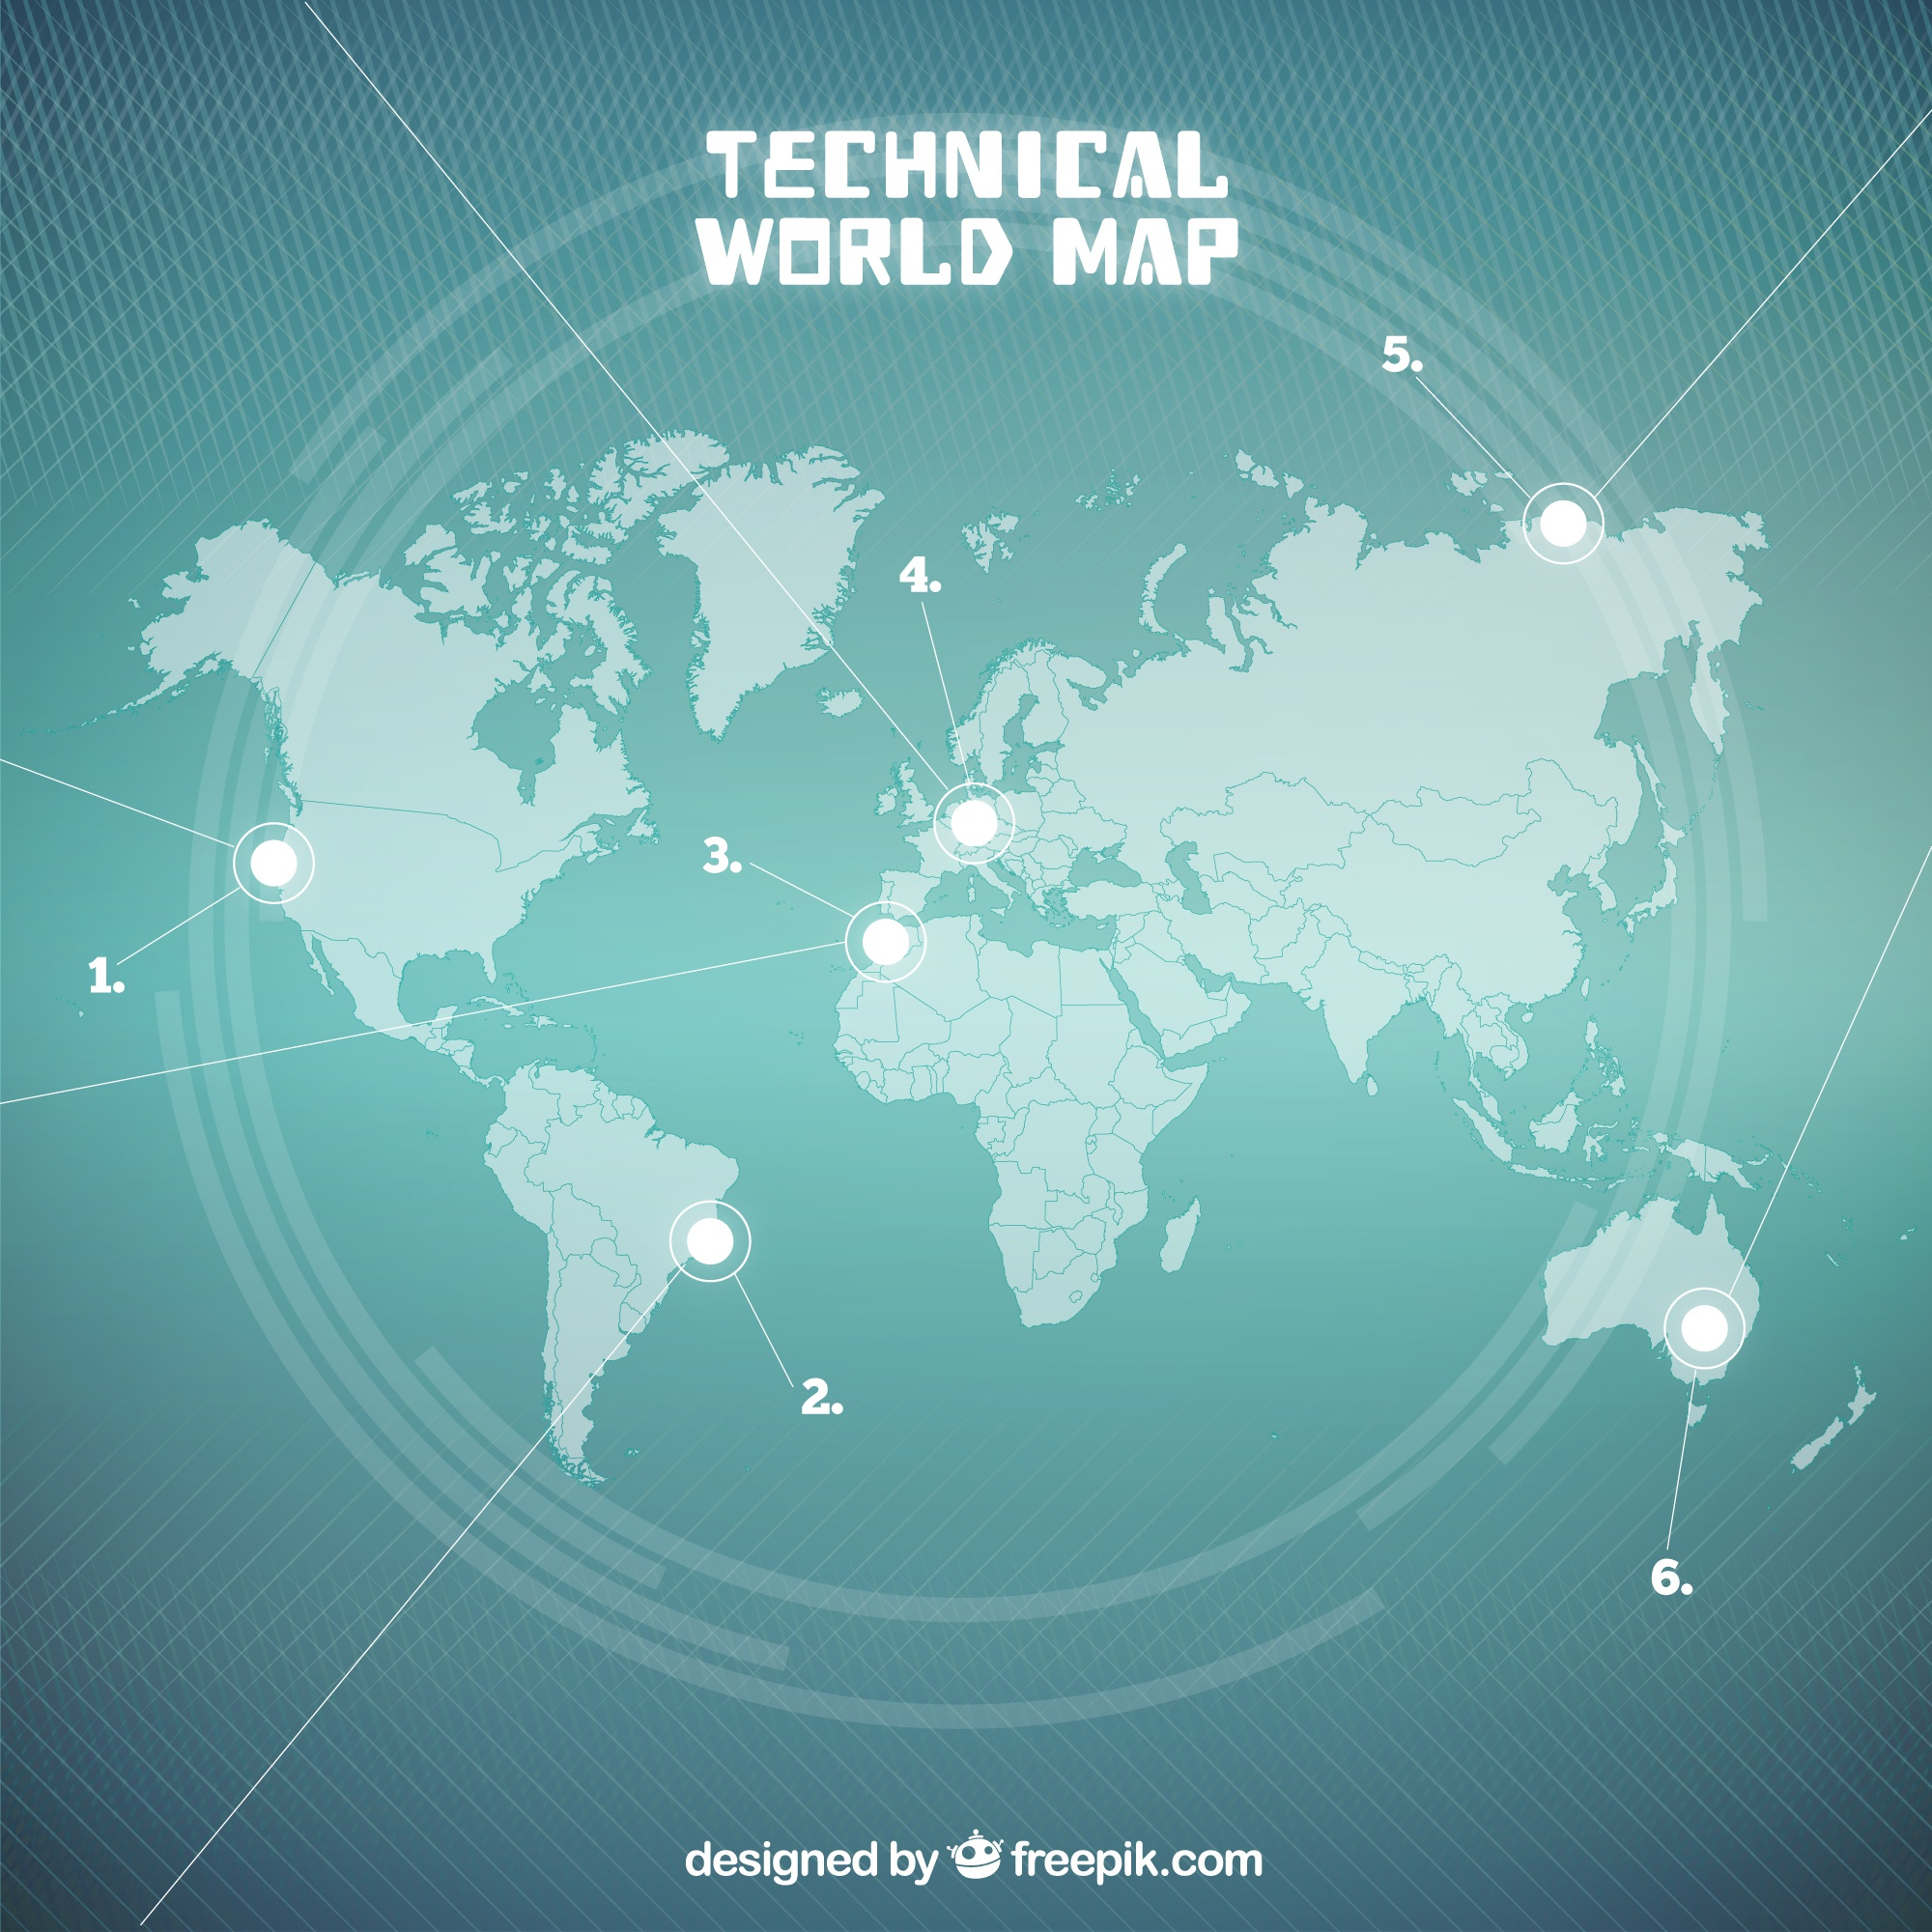 Seagreen Technical World Map